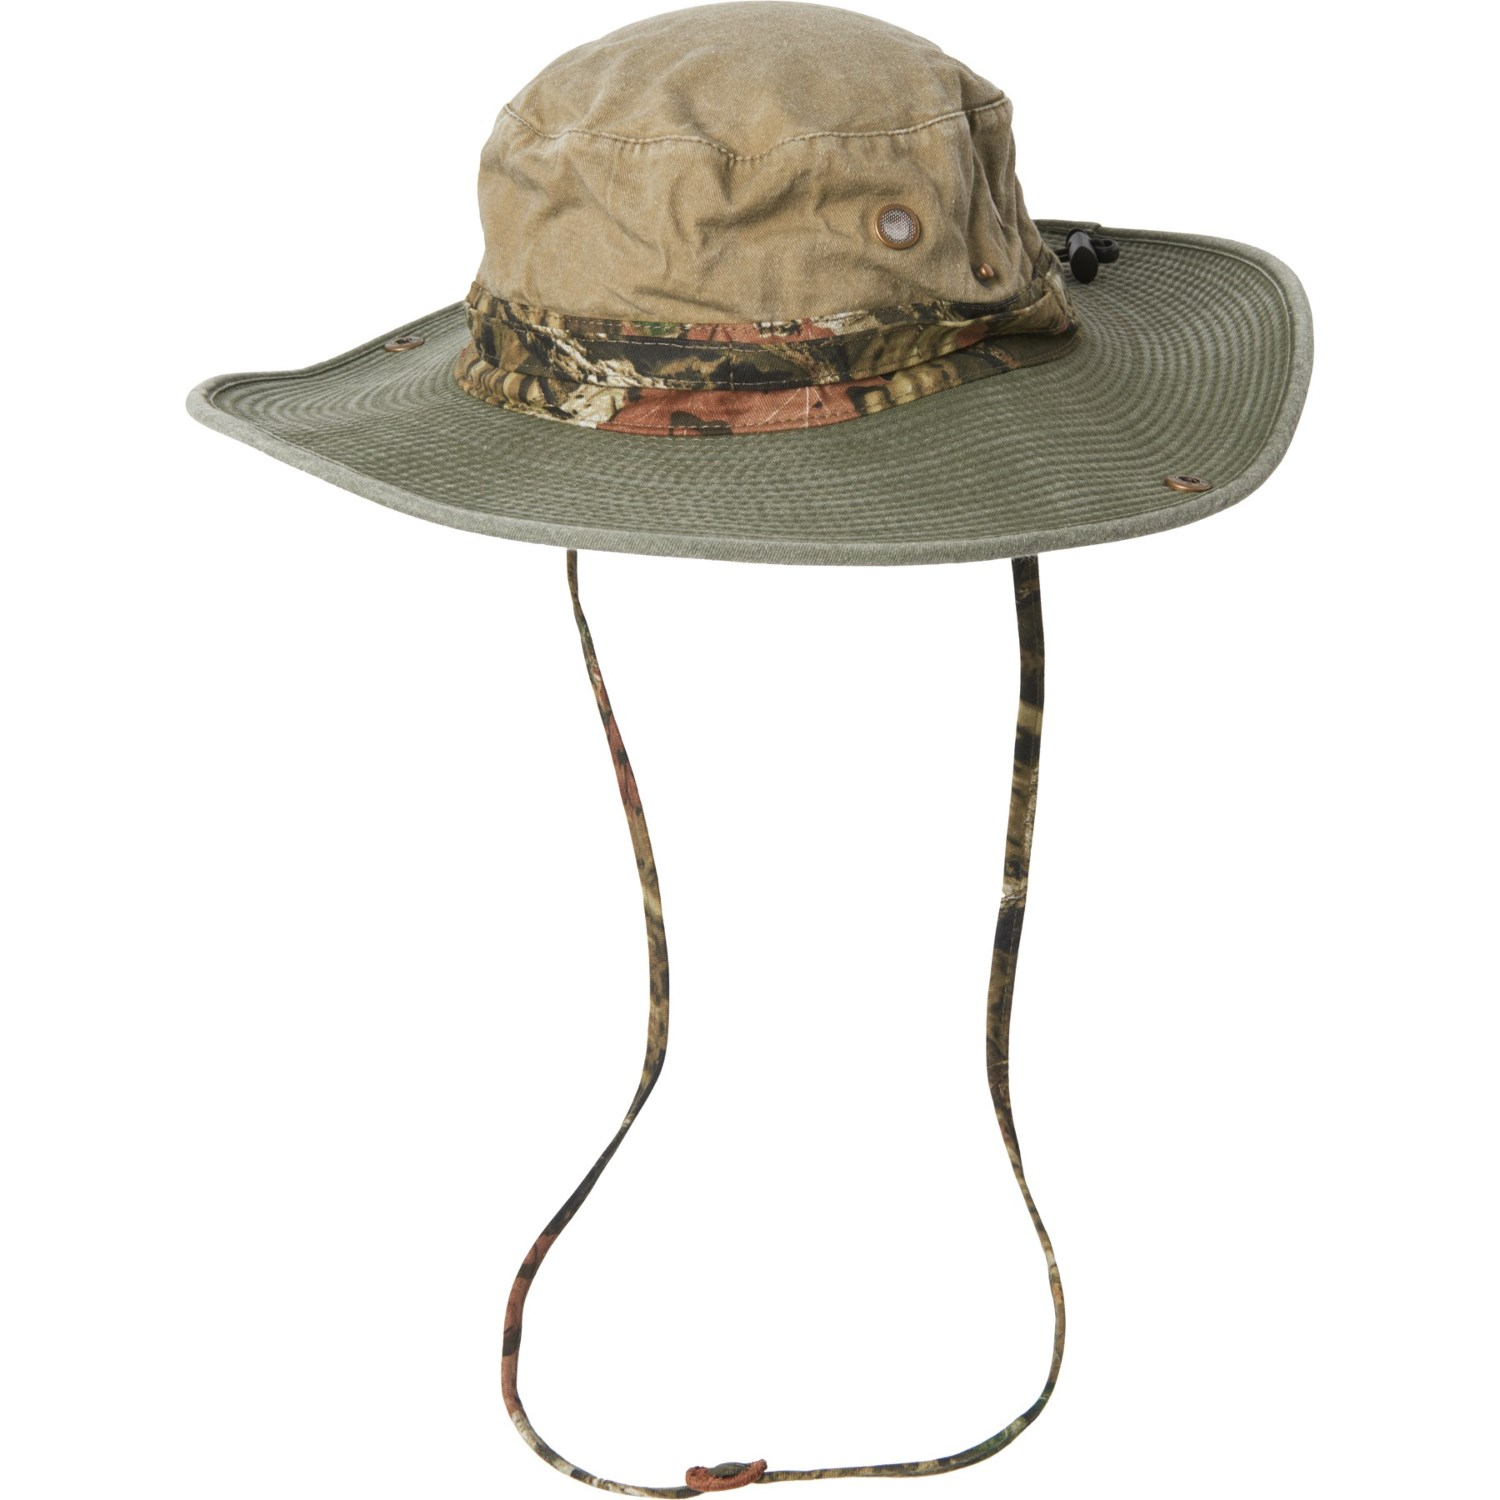 bb1a77ad4 Mossy Oak Underbrim Boonie Hat (For Men) - Save 53%